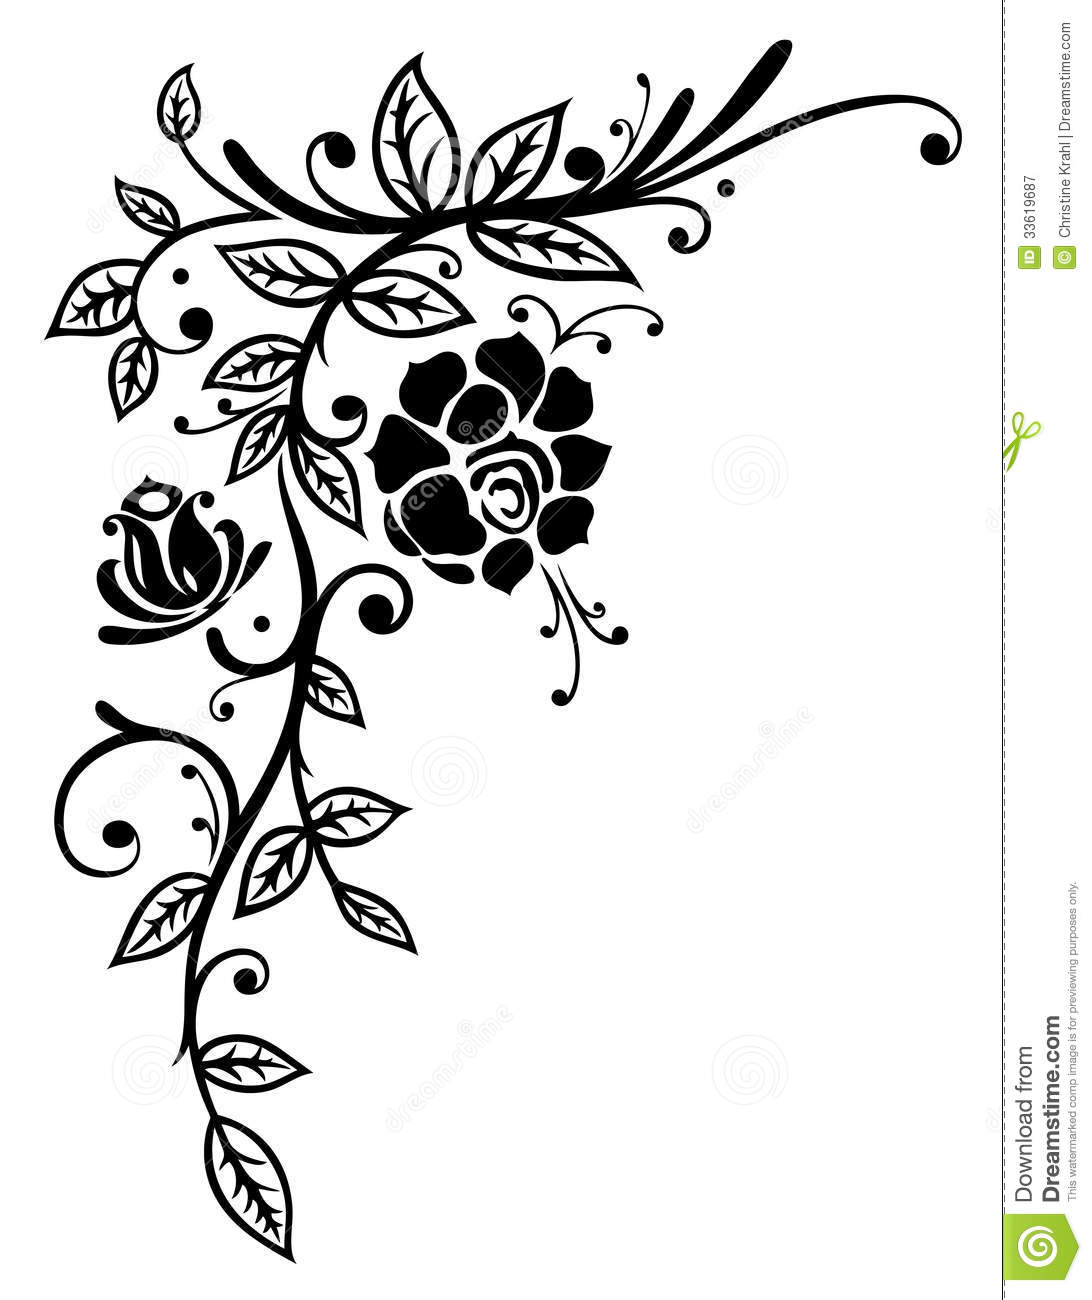 Knumathise rose clip art black and white border images rose clip art black and white border mightylinksfo